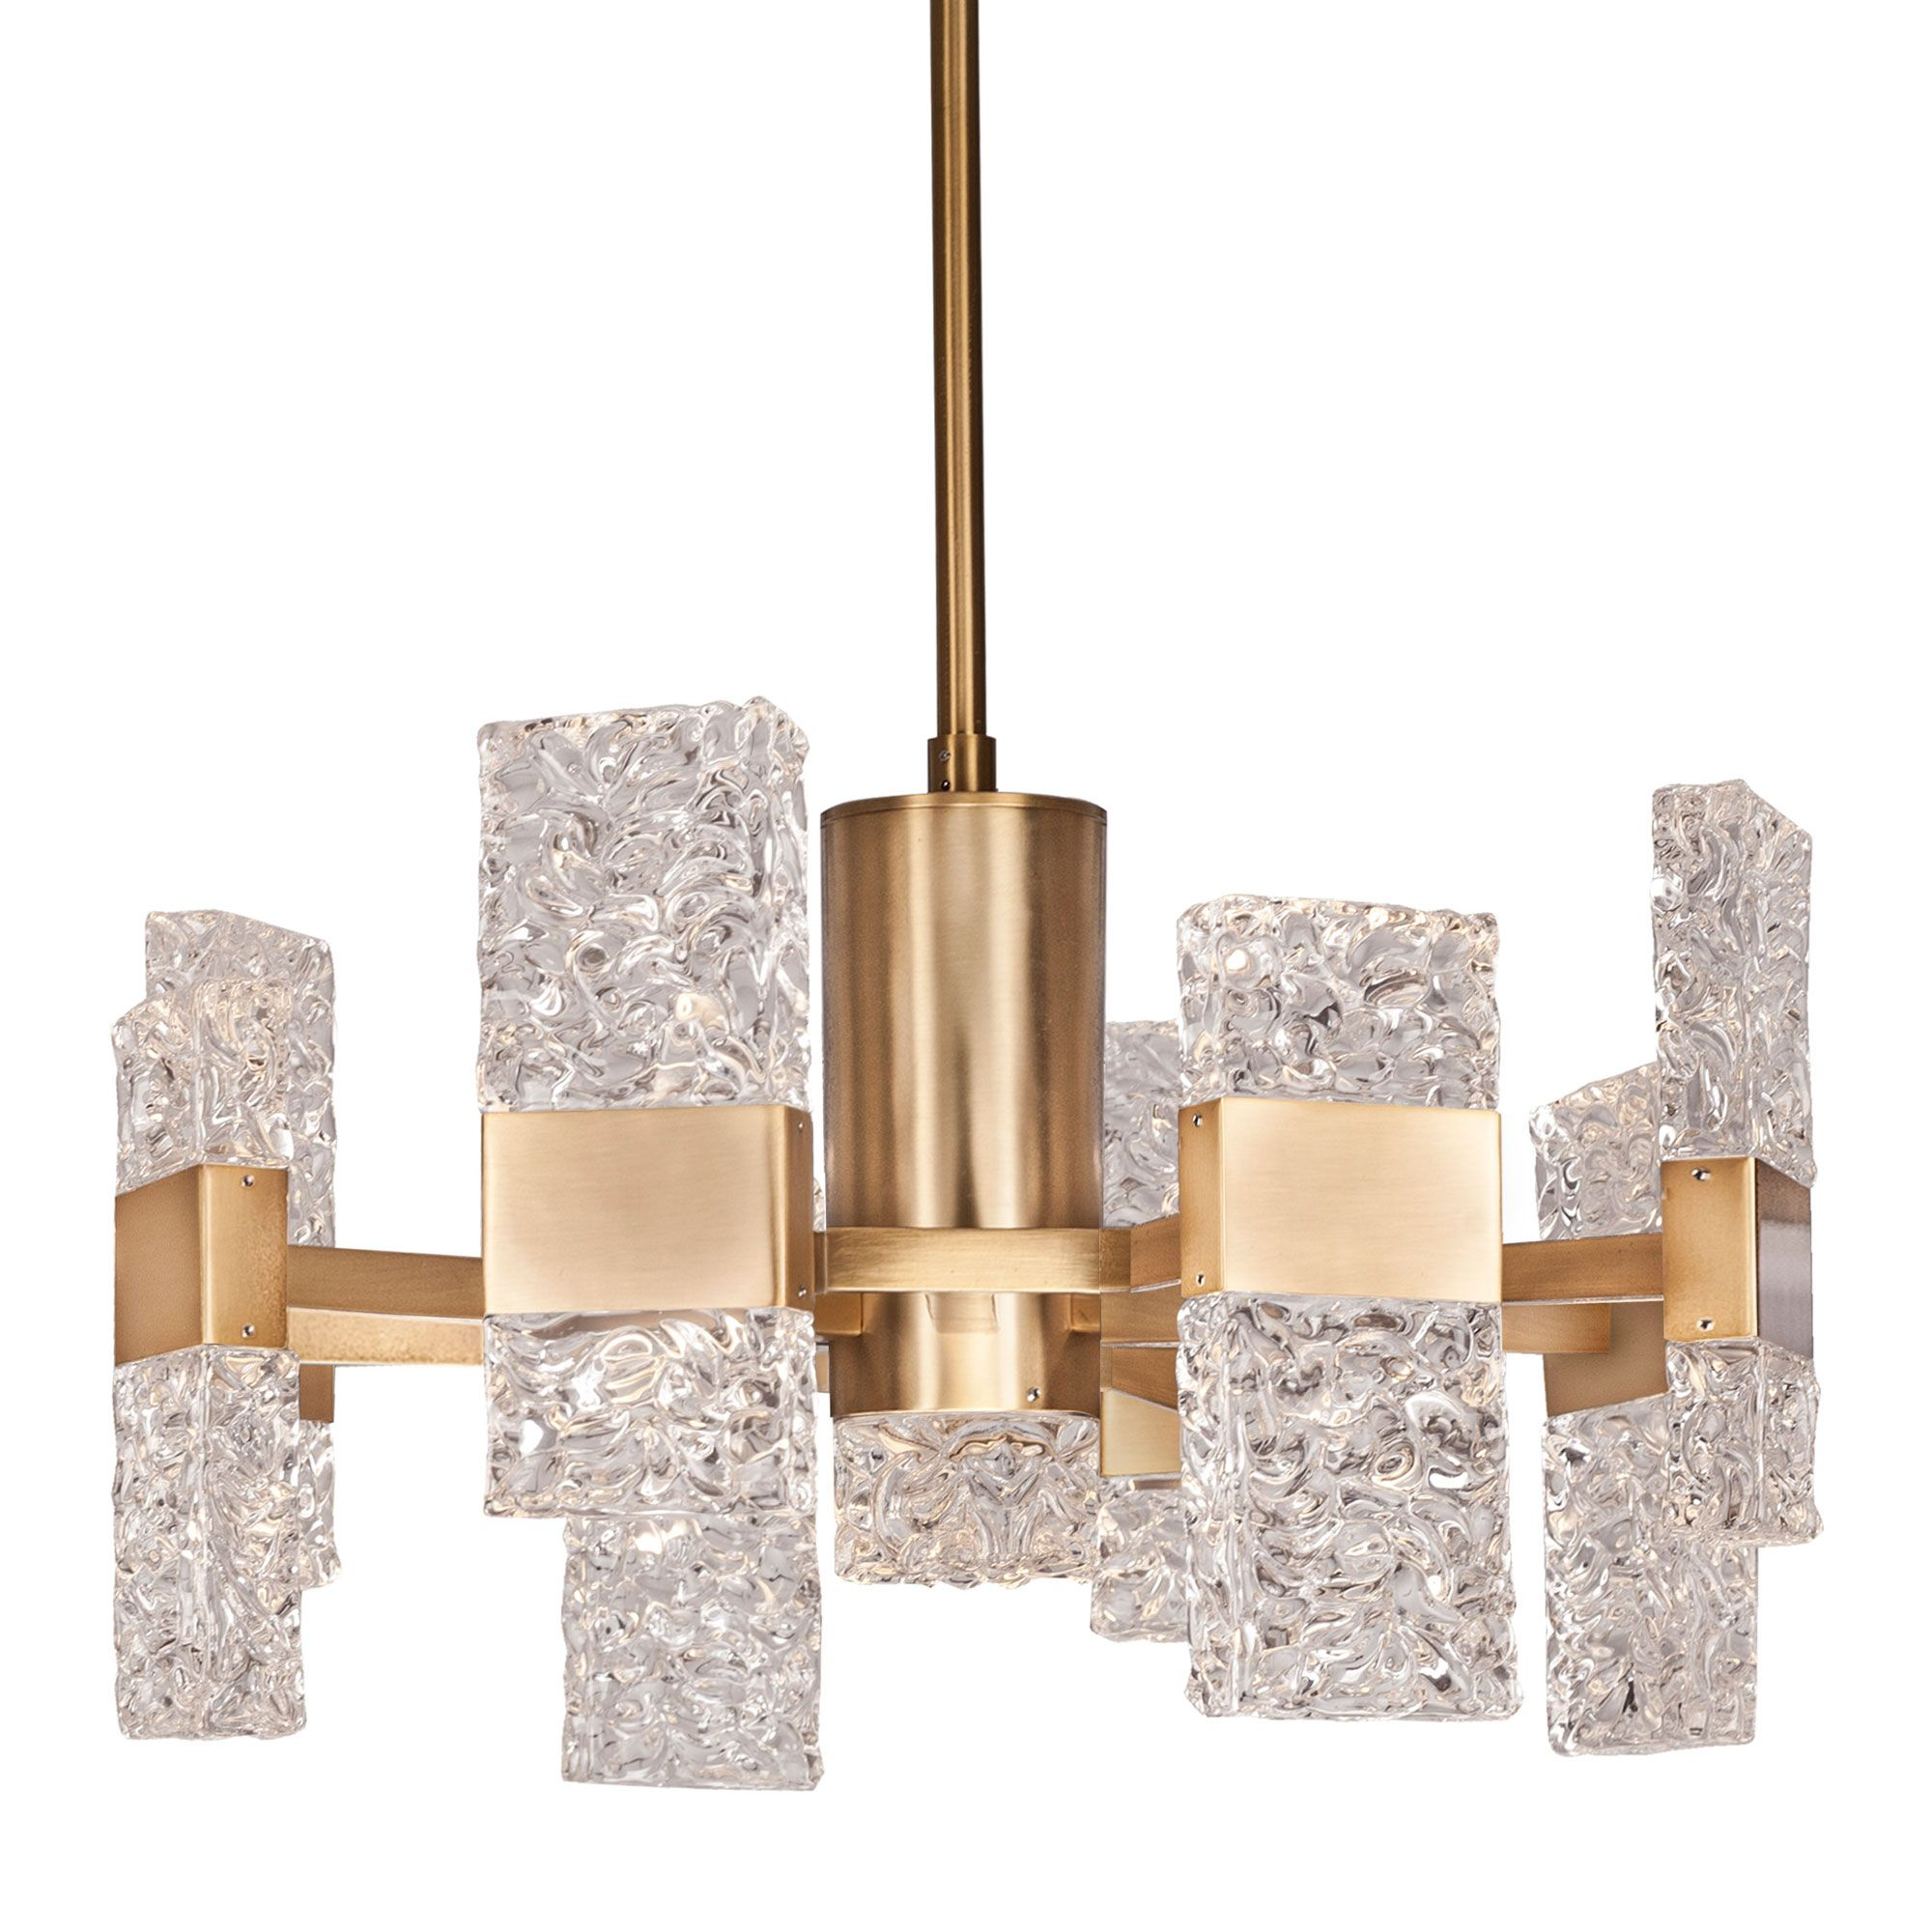 Oslo Chandelier By Kuzco Lighting Ch9522 Gb In 2020 Led Chandelier Chandelier Ceiling Lights Chandelier